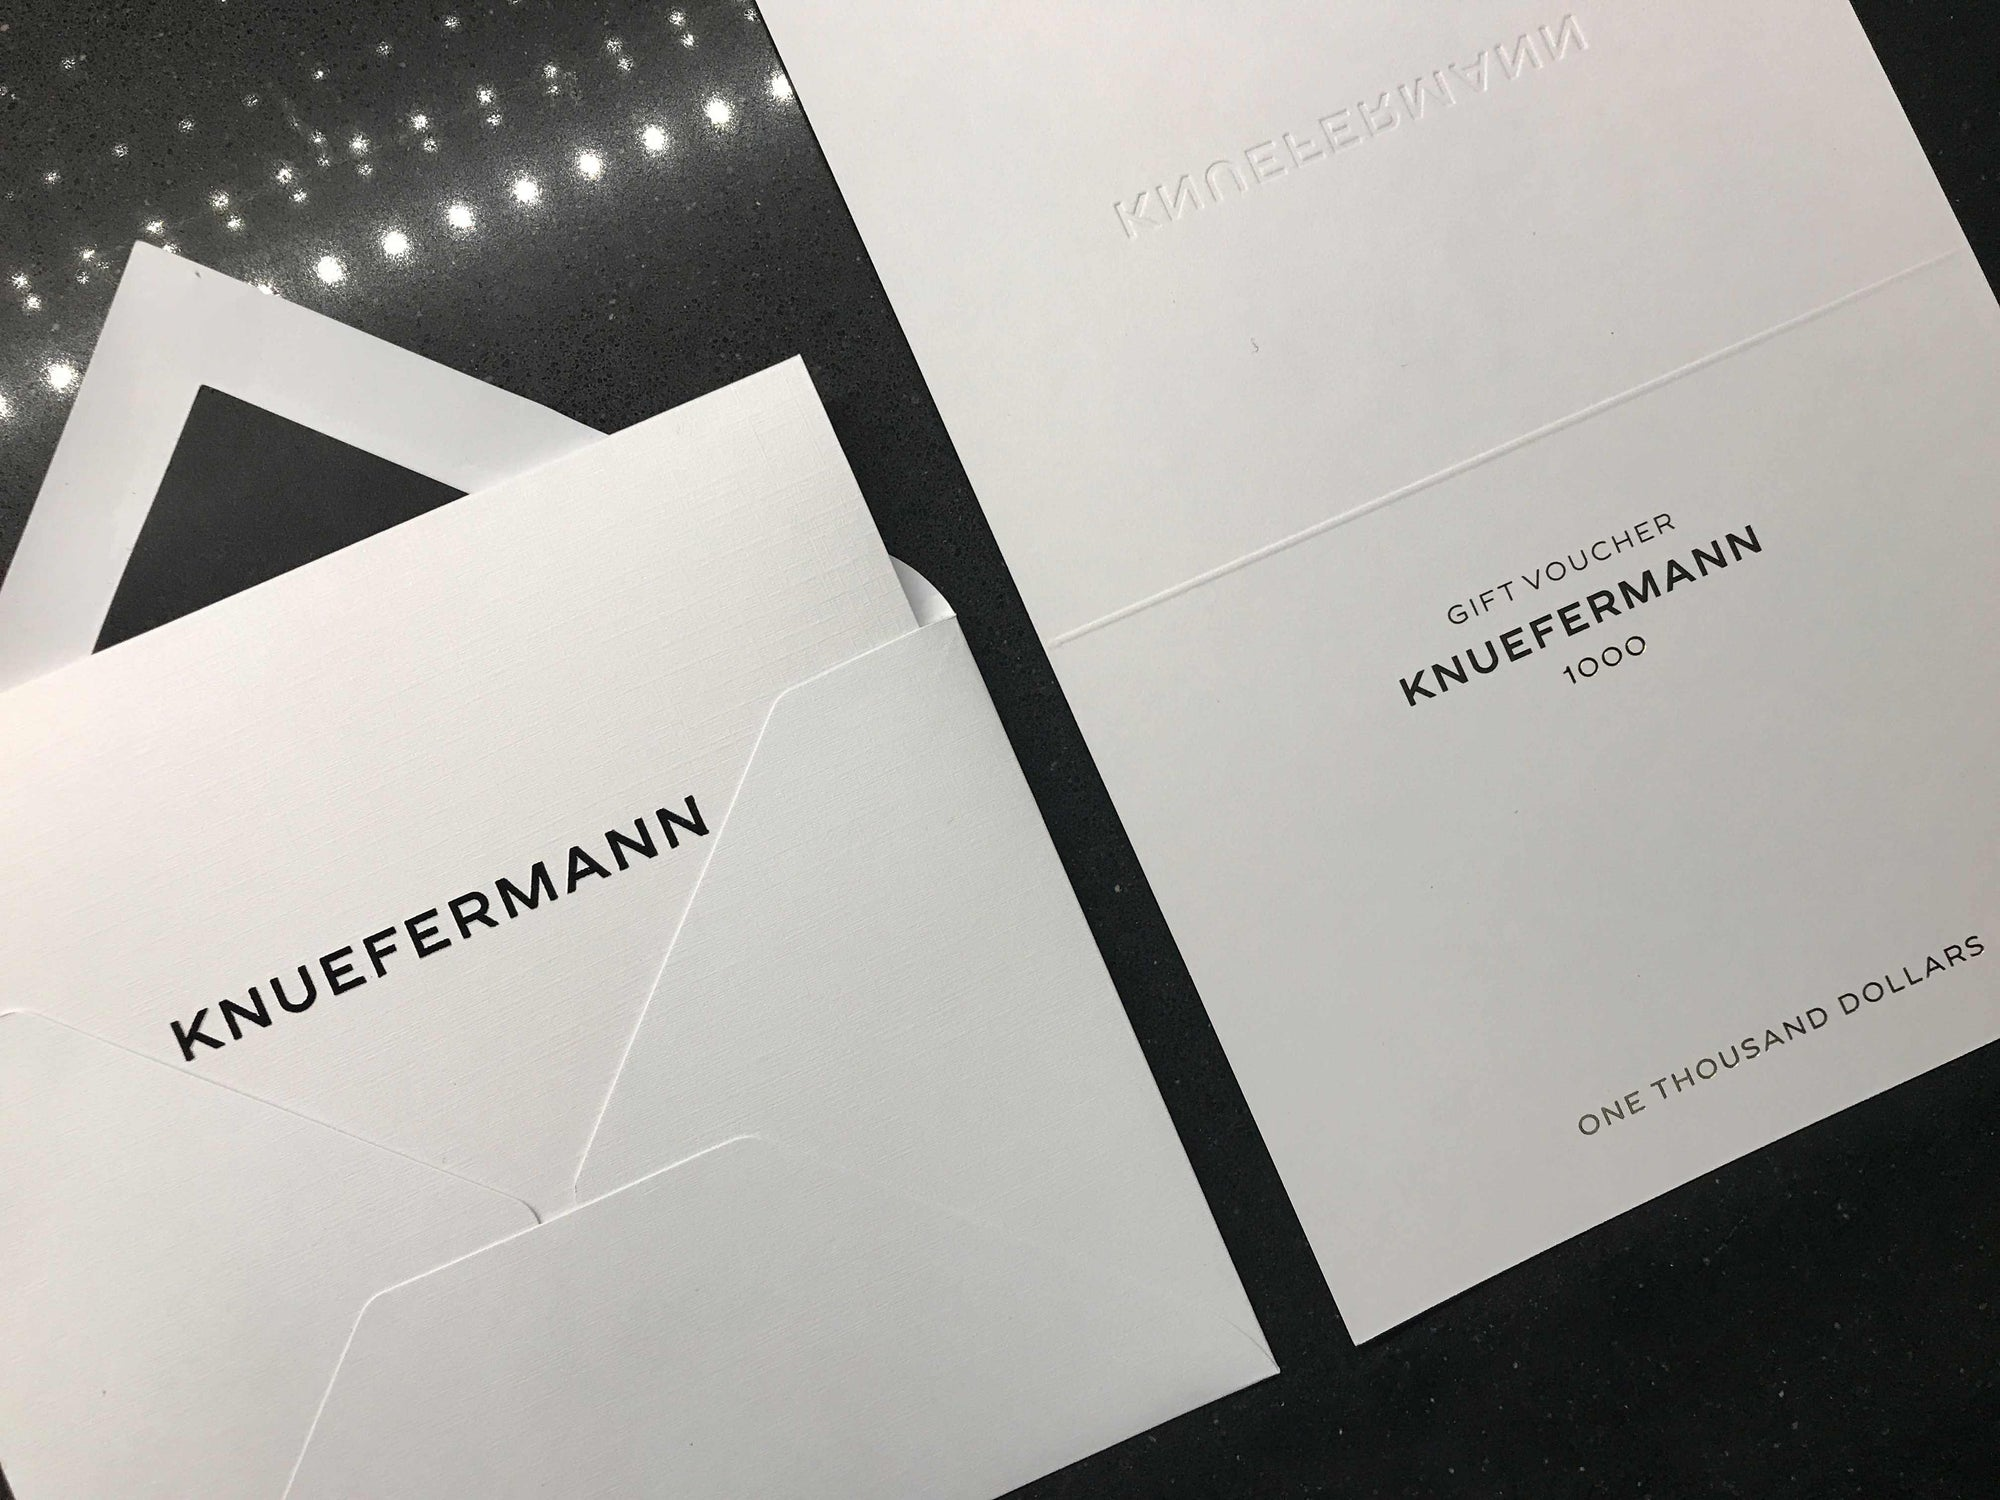 GIFT VOUCHER $1000 - KNUEFERMANN